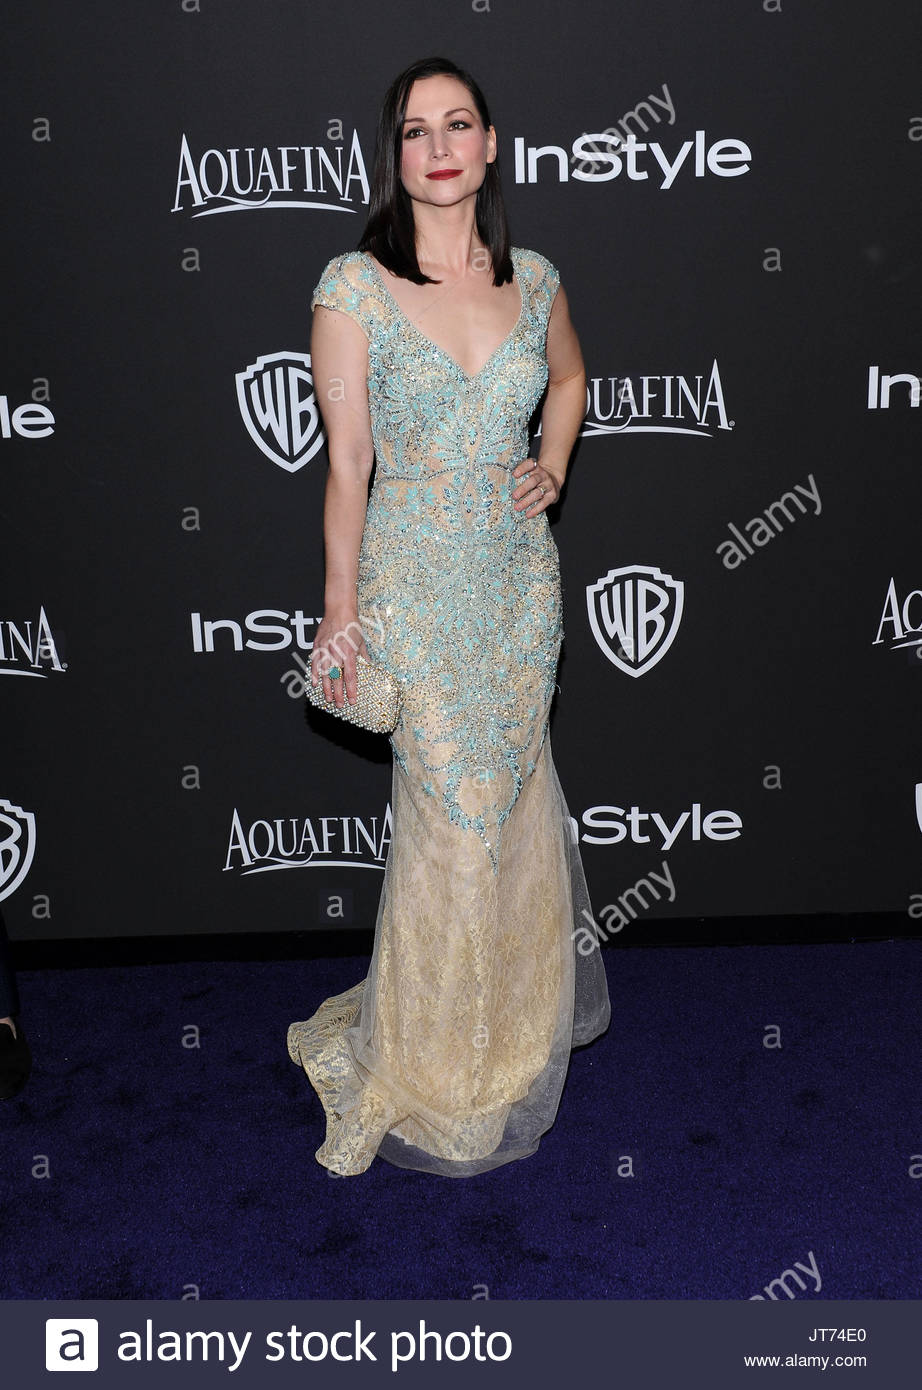 heather-mccomb-stars-arrive-to-the-wb-instyle-golden-globe-after-party-JT74E0.jpg